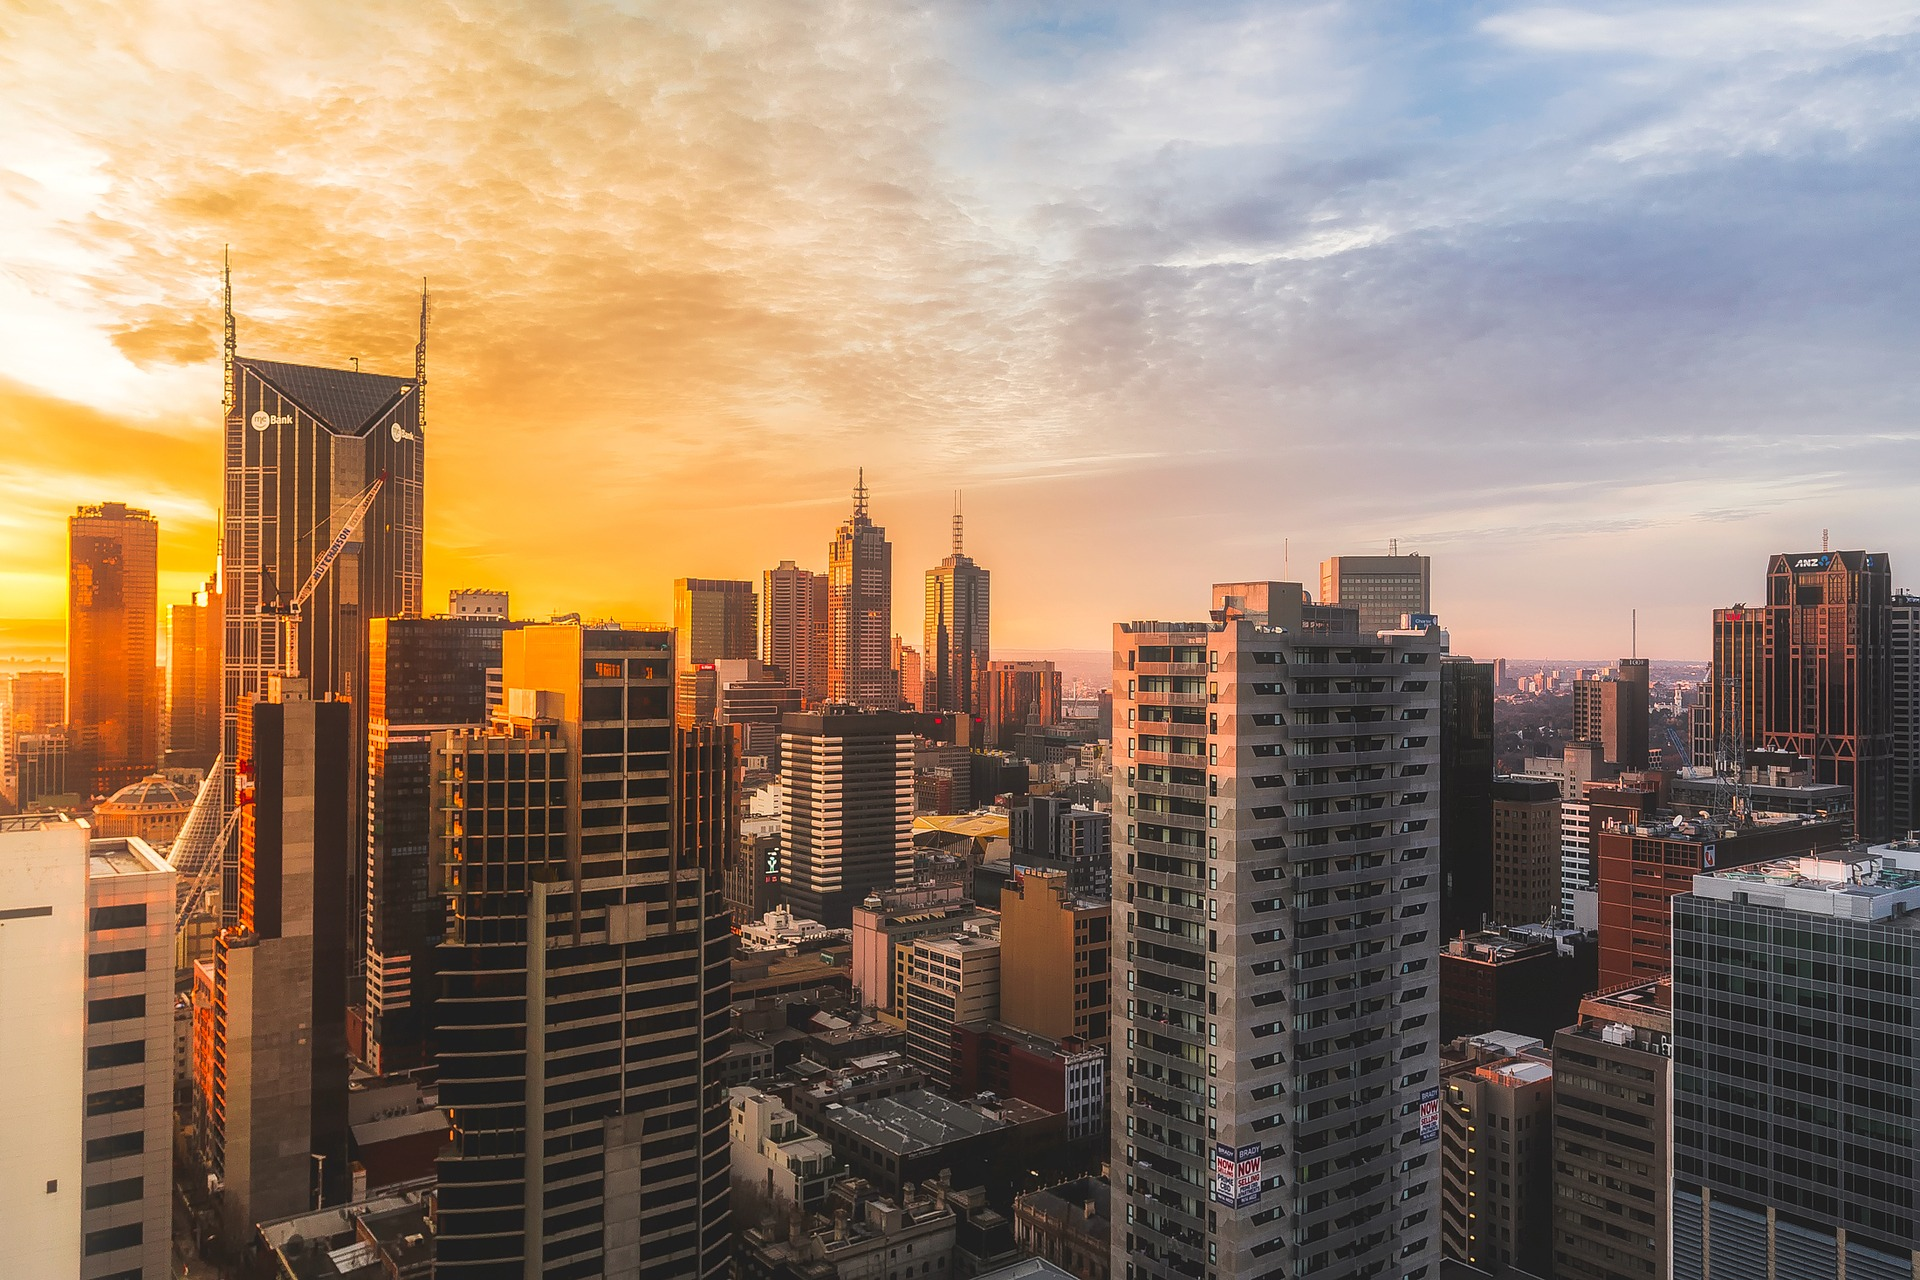 Generalisation, over-reaction and short-sightedness hits the Melbourne property market